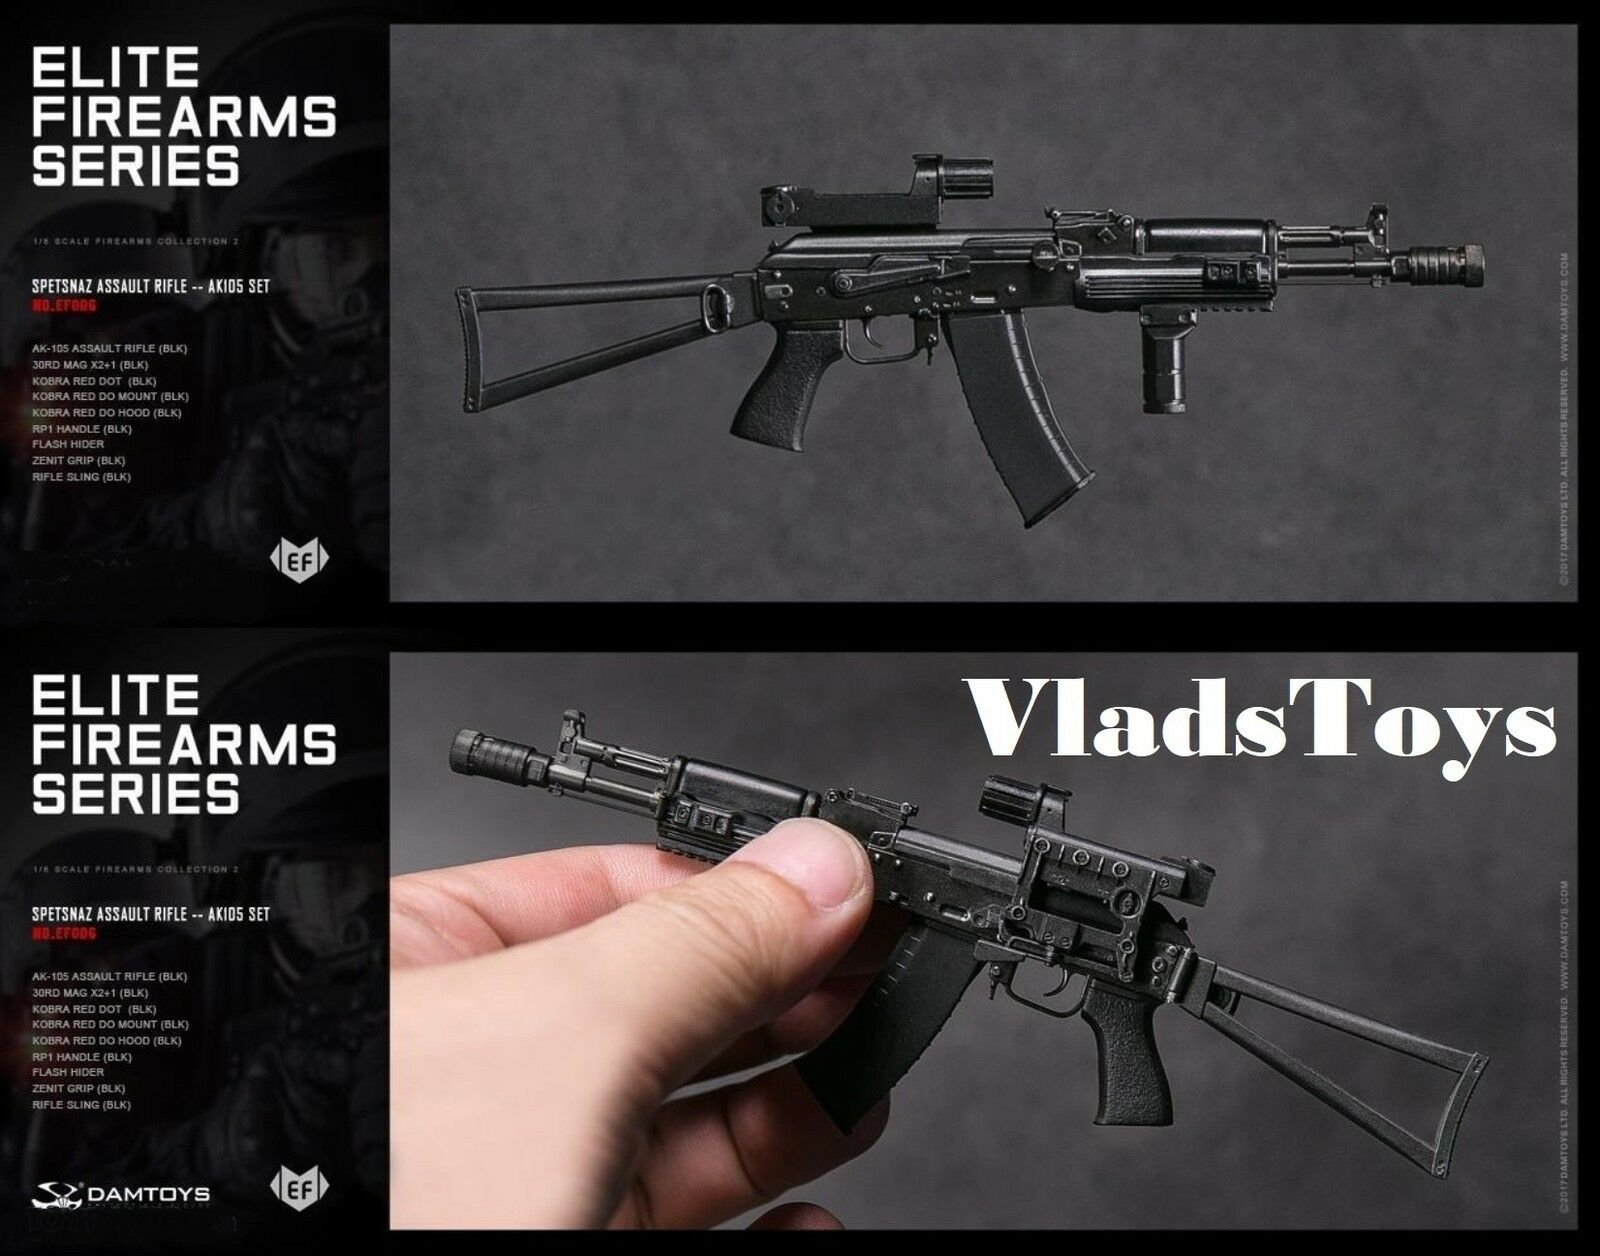 Spetsnaz Assault Rifle AK105 Set 1 6 DamToys Elite Firearms Series 2 EF006 USA